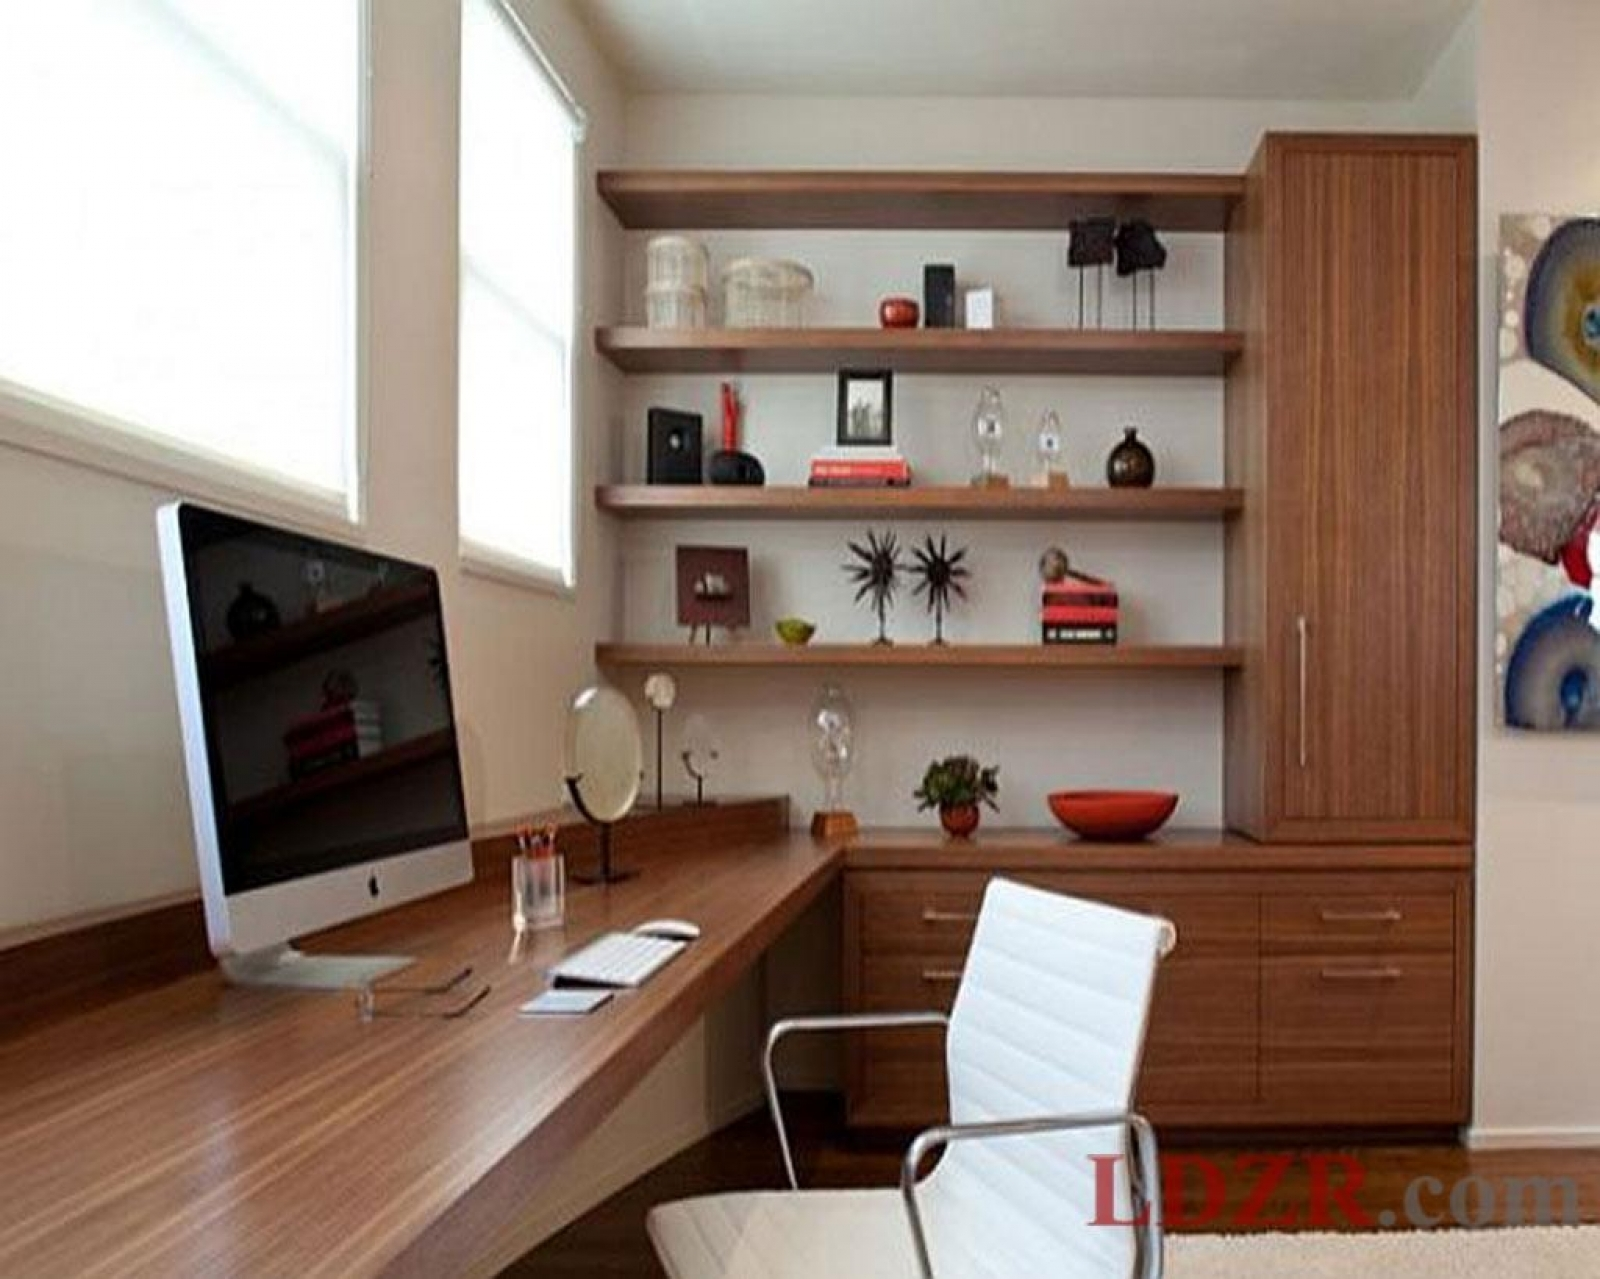 Lovely Design Of The Brown Wooden Shelves And Table Ideas With White Chairs And White Wall As The Narrow Office Ideas